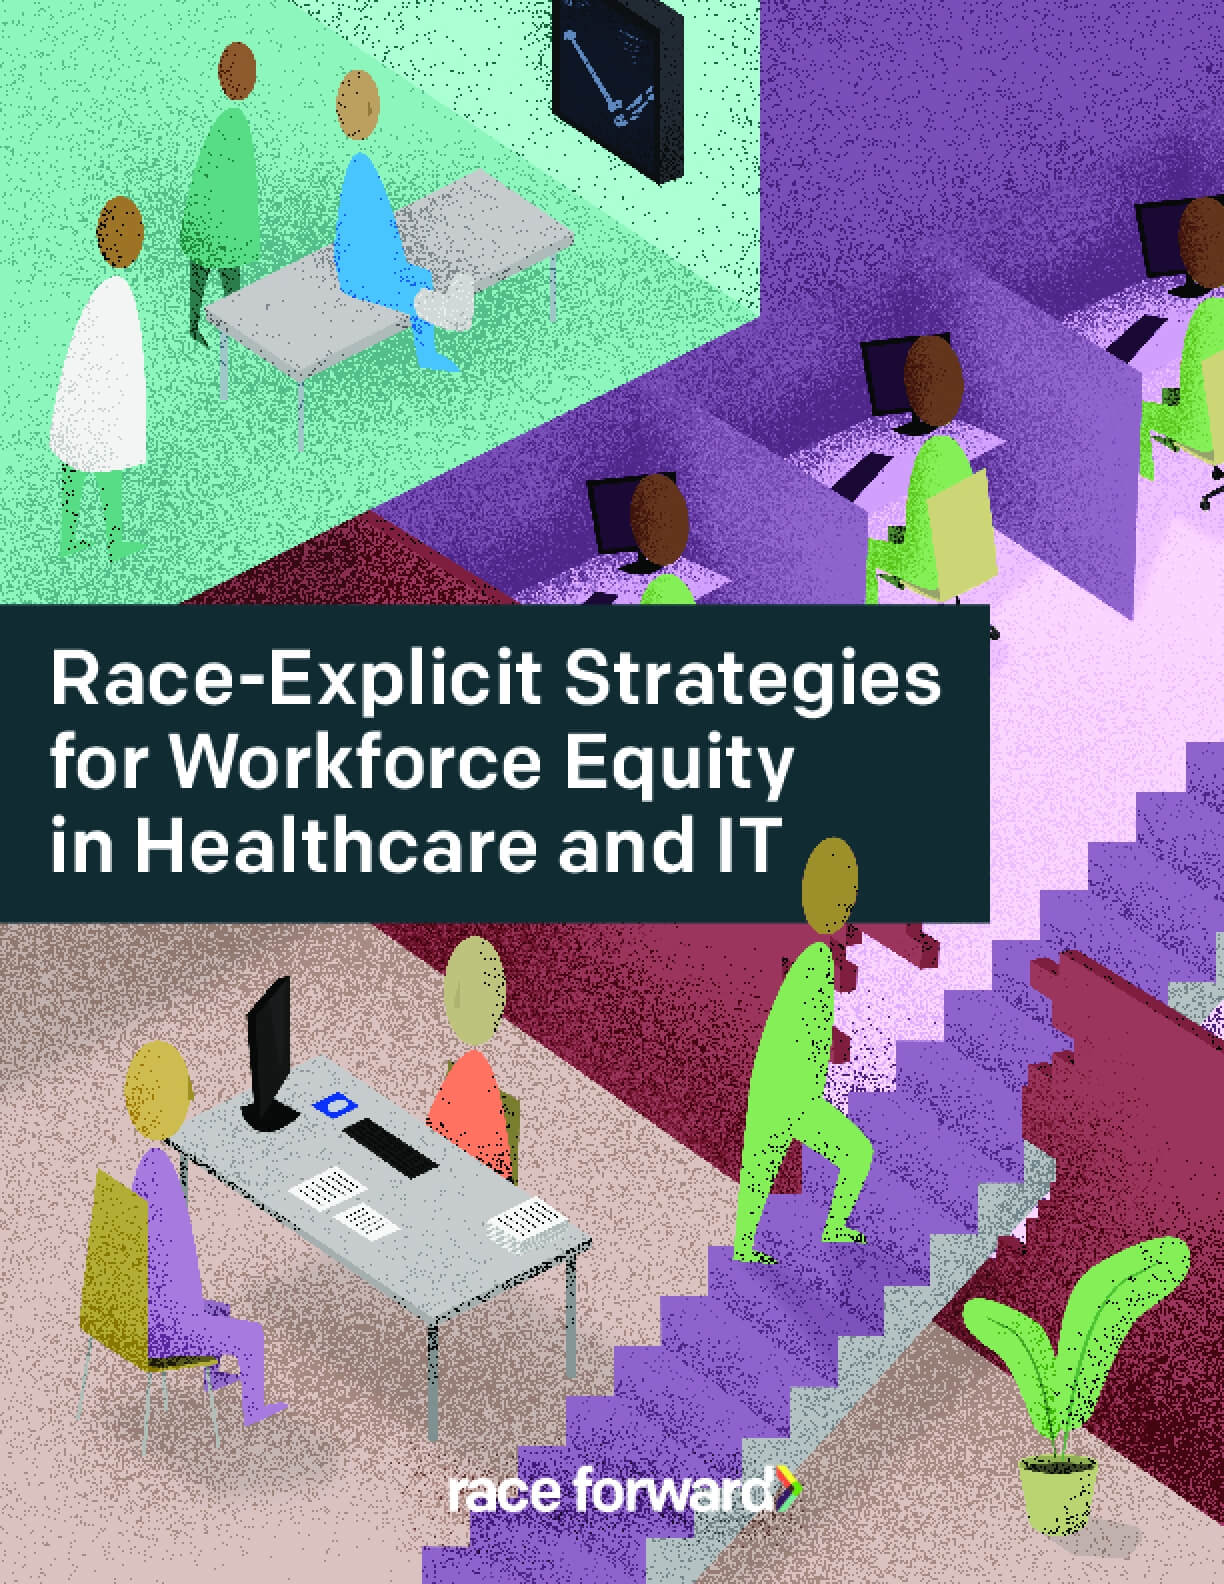 Race-Explicit Strategies for Workforce Equity in Healthcare and IT